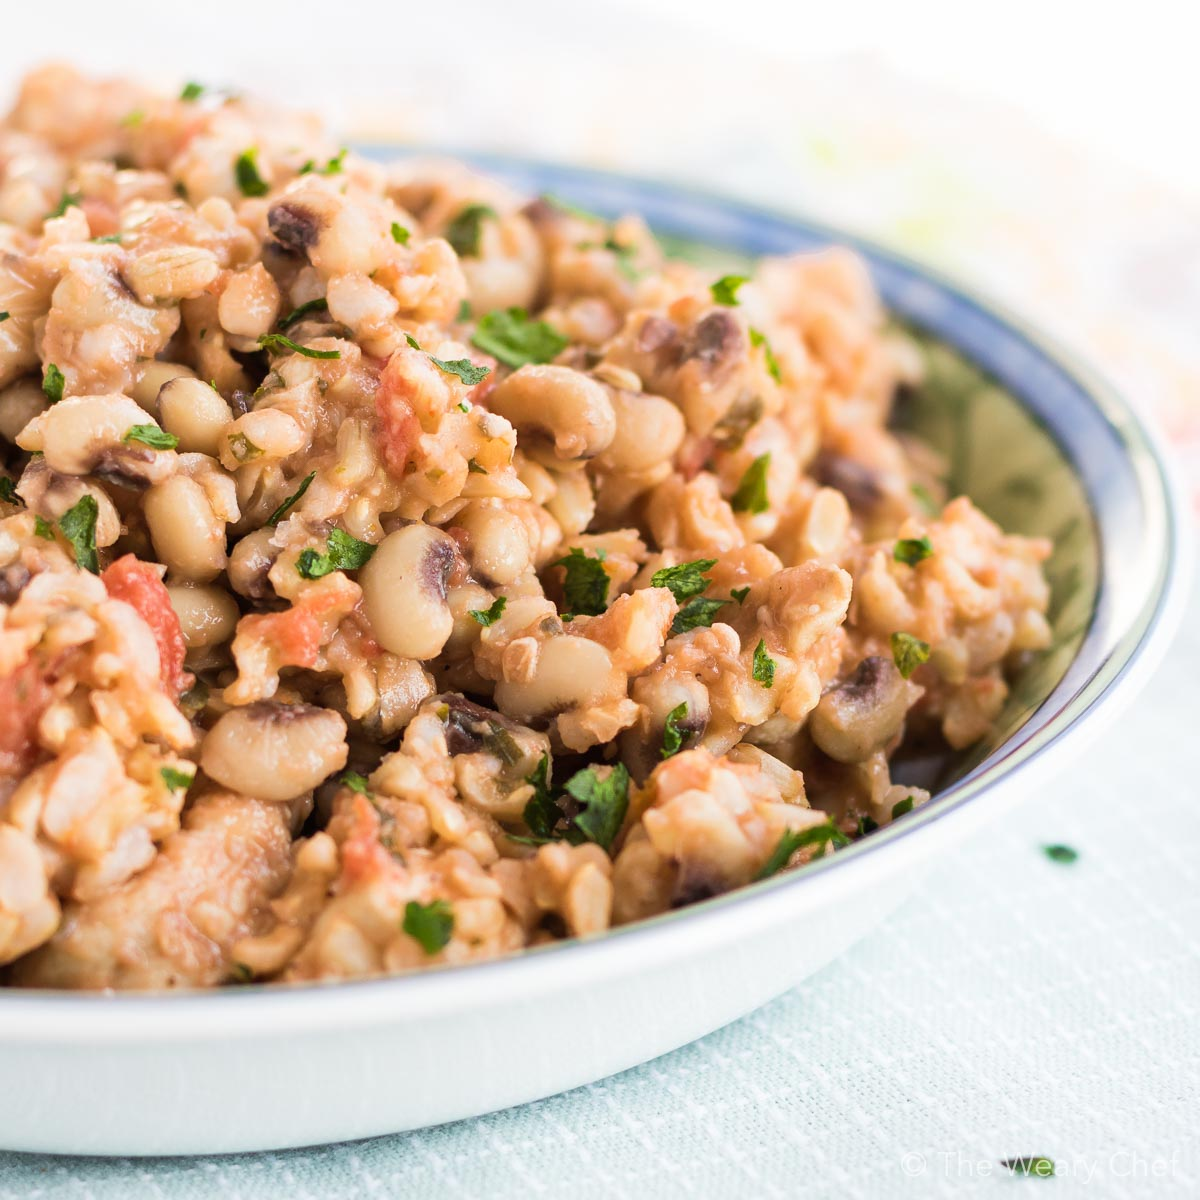 This one-pot recipe with chicken, black eyed peas, and rice is a hearty meal on the healthy side. You'll love the flavor, ease, and wholesomeness of this dish!